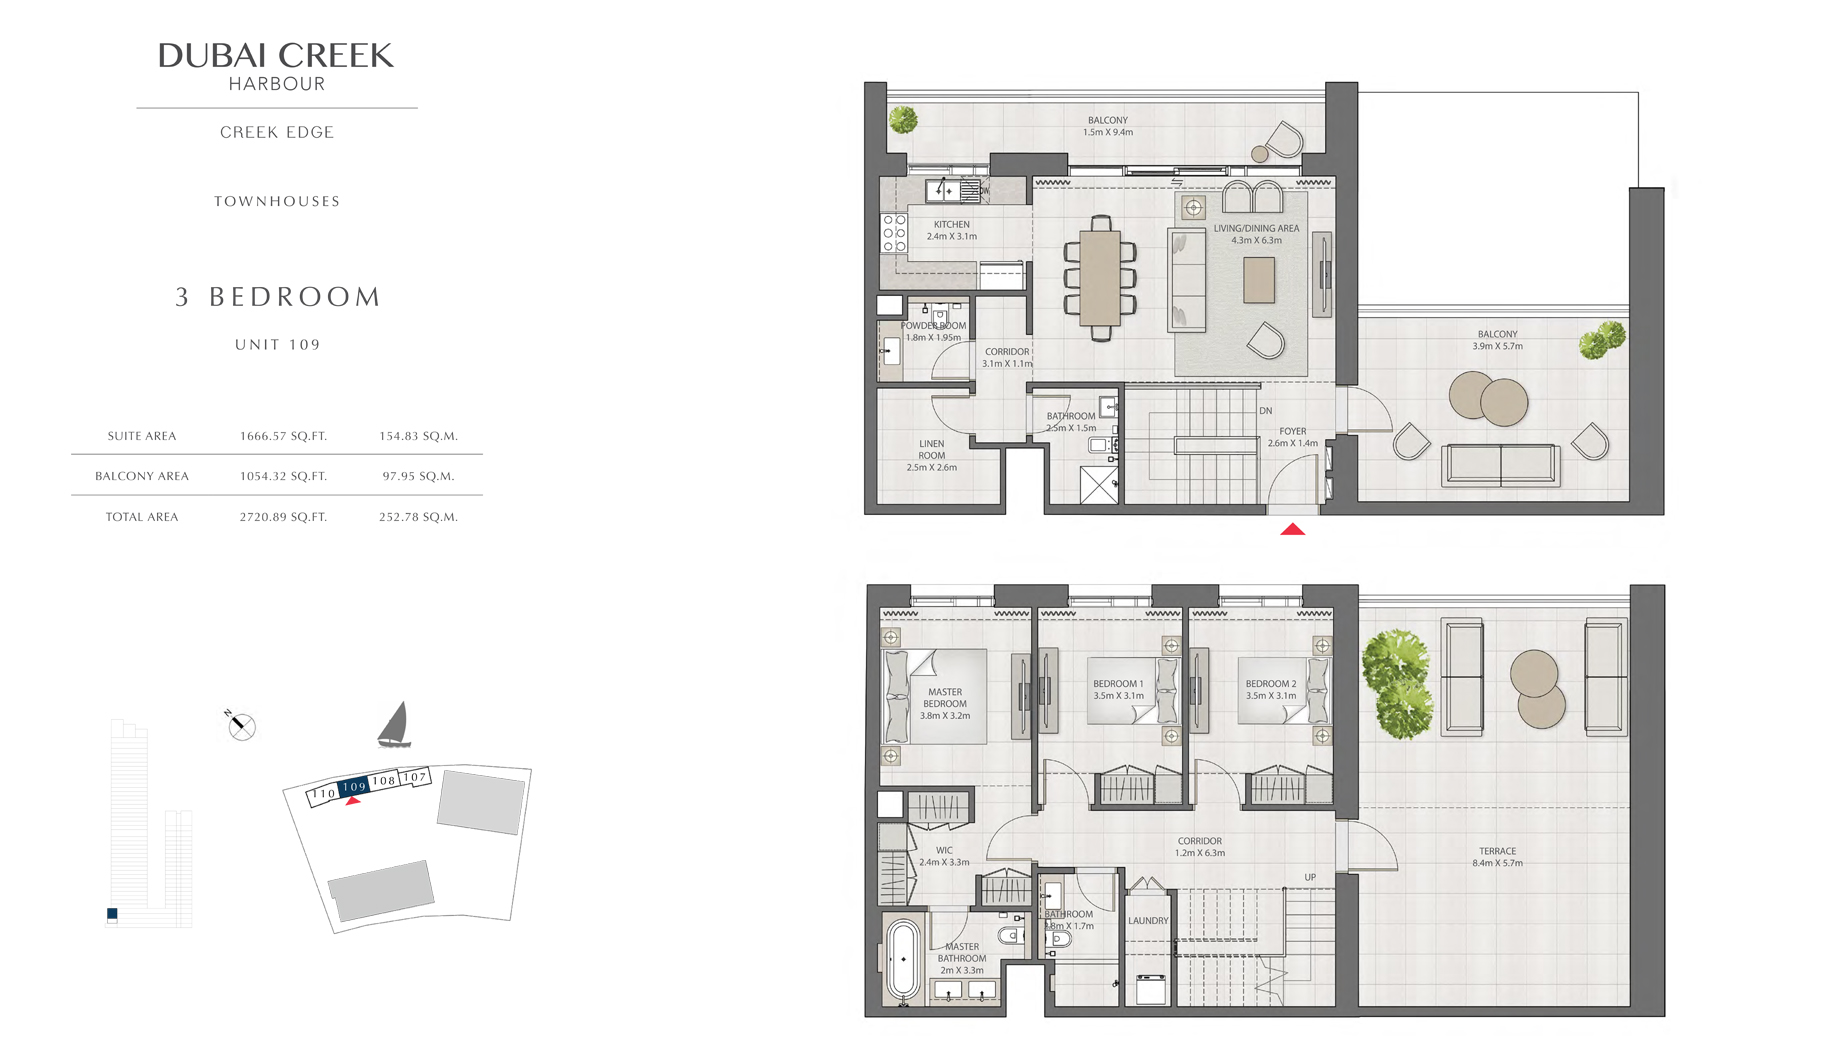 3 Bedroom Townhouses Unit 109 Size 2720 sq.ft